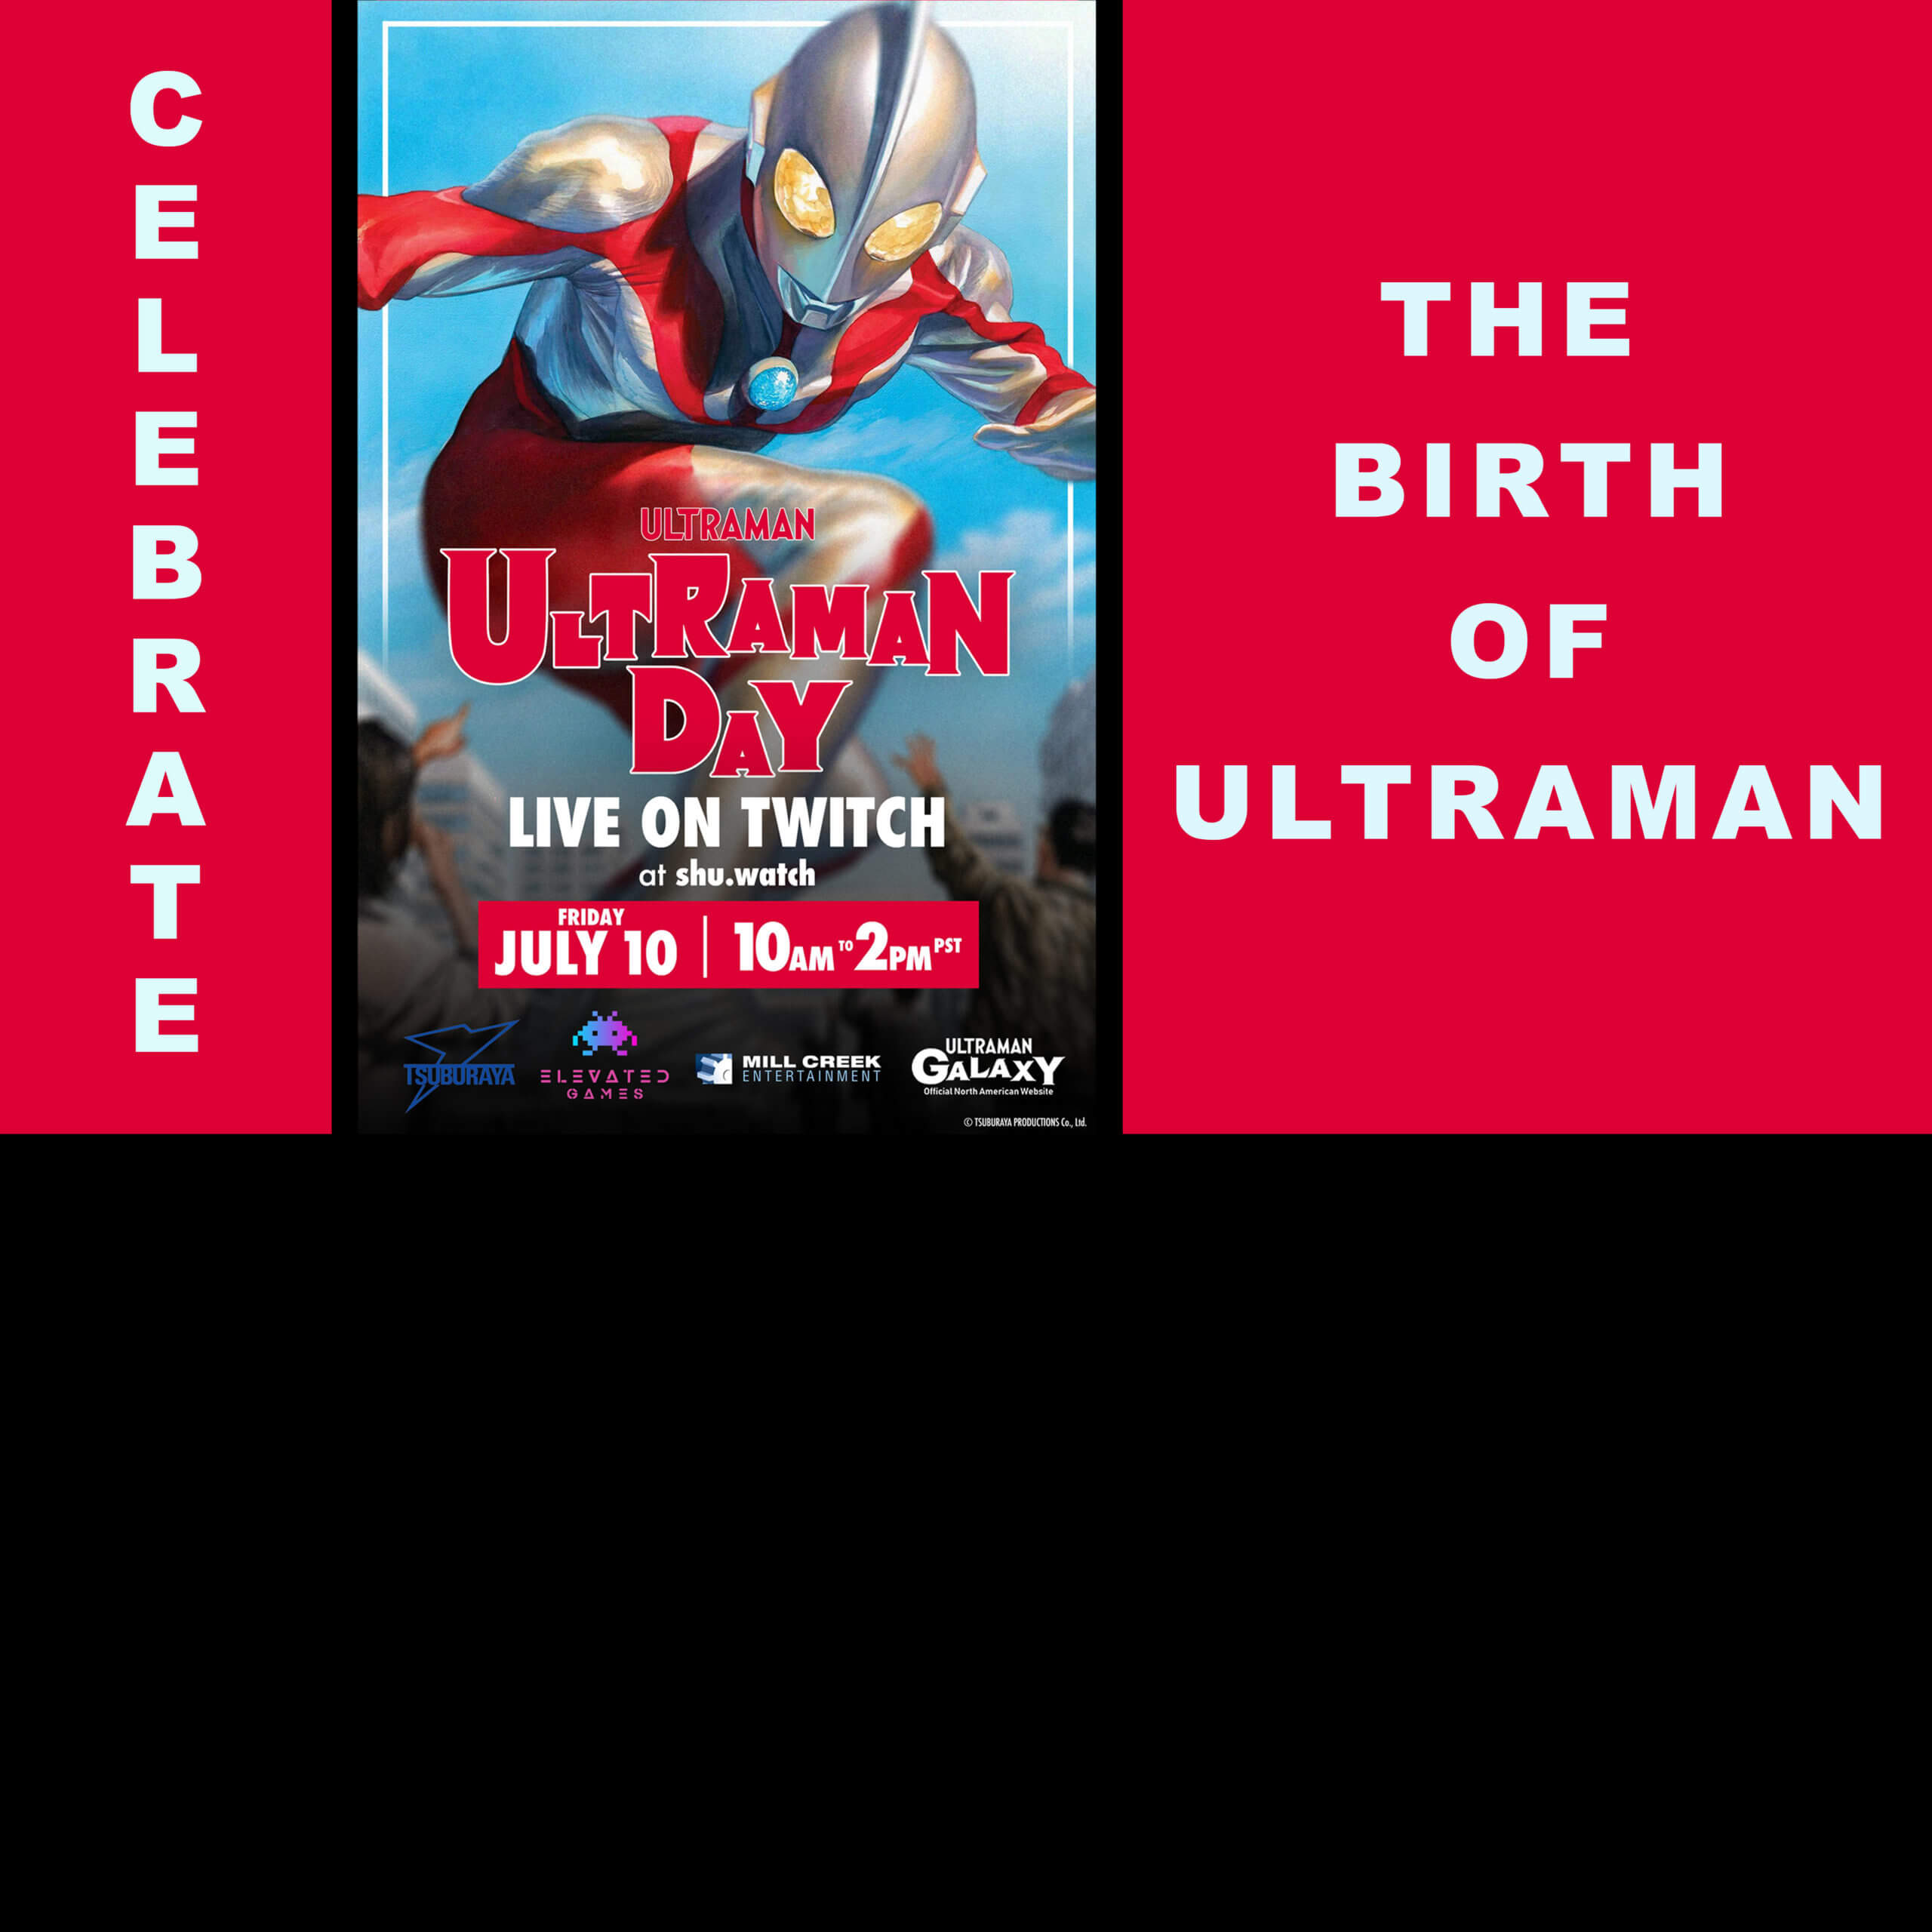 ULTRAMAN DAY TO BE FILLED WITH BIG ANNOUNCEMENTSJULY 10, 2020